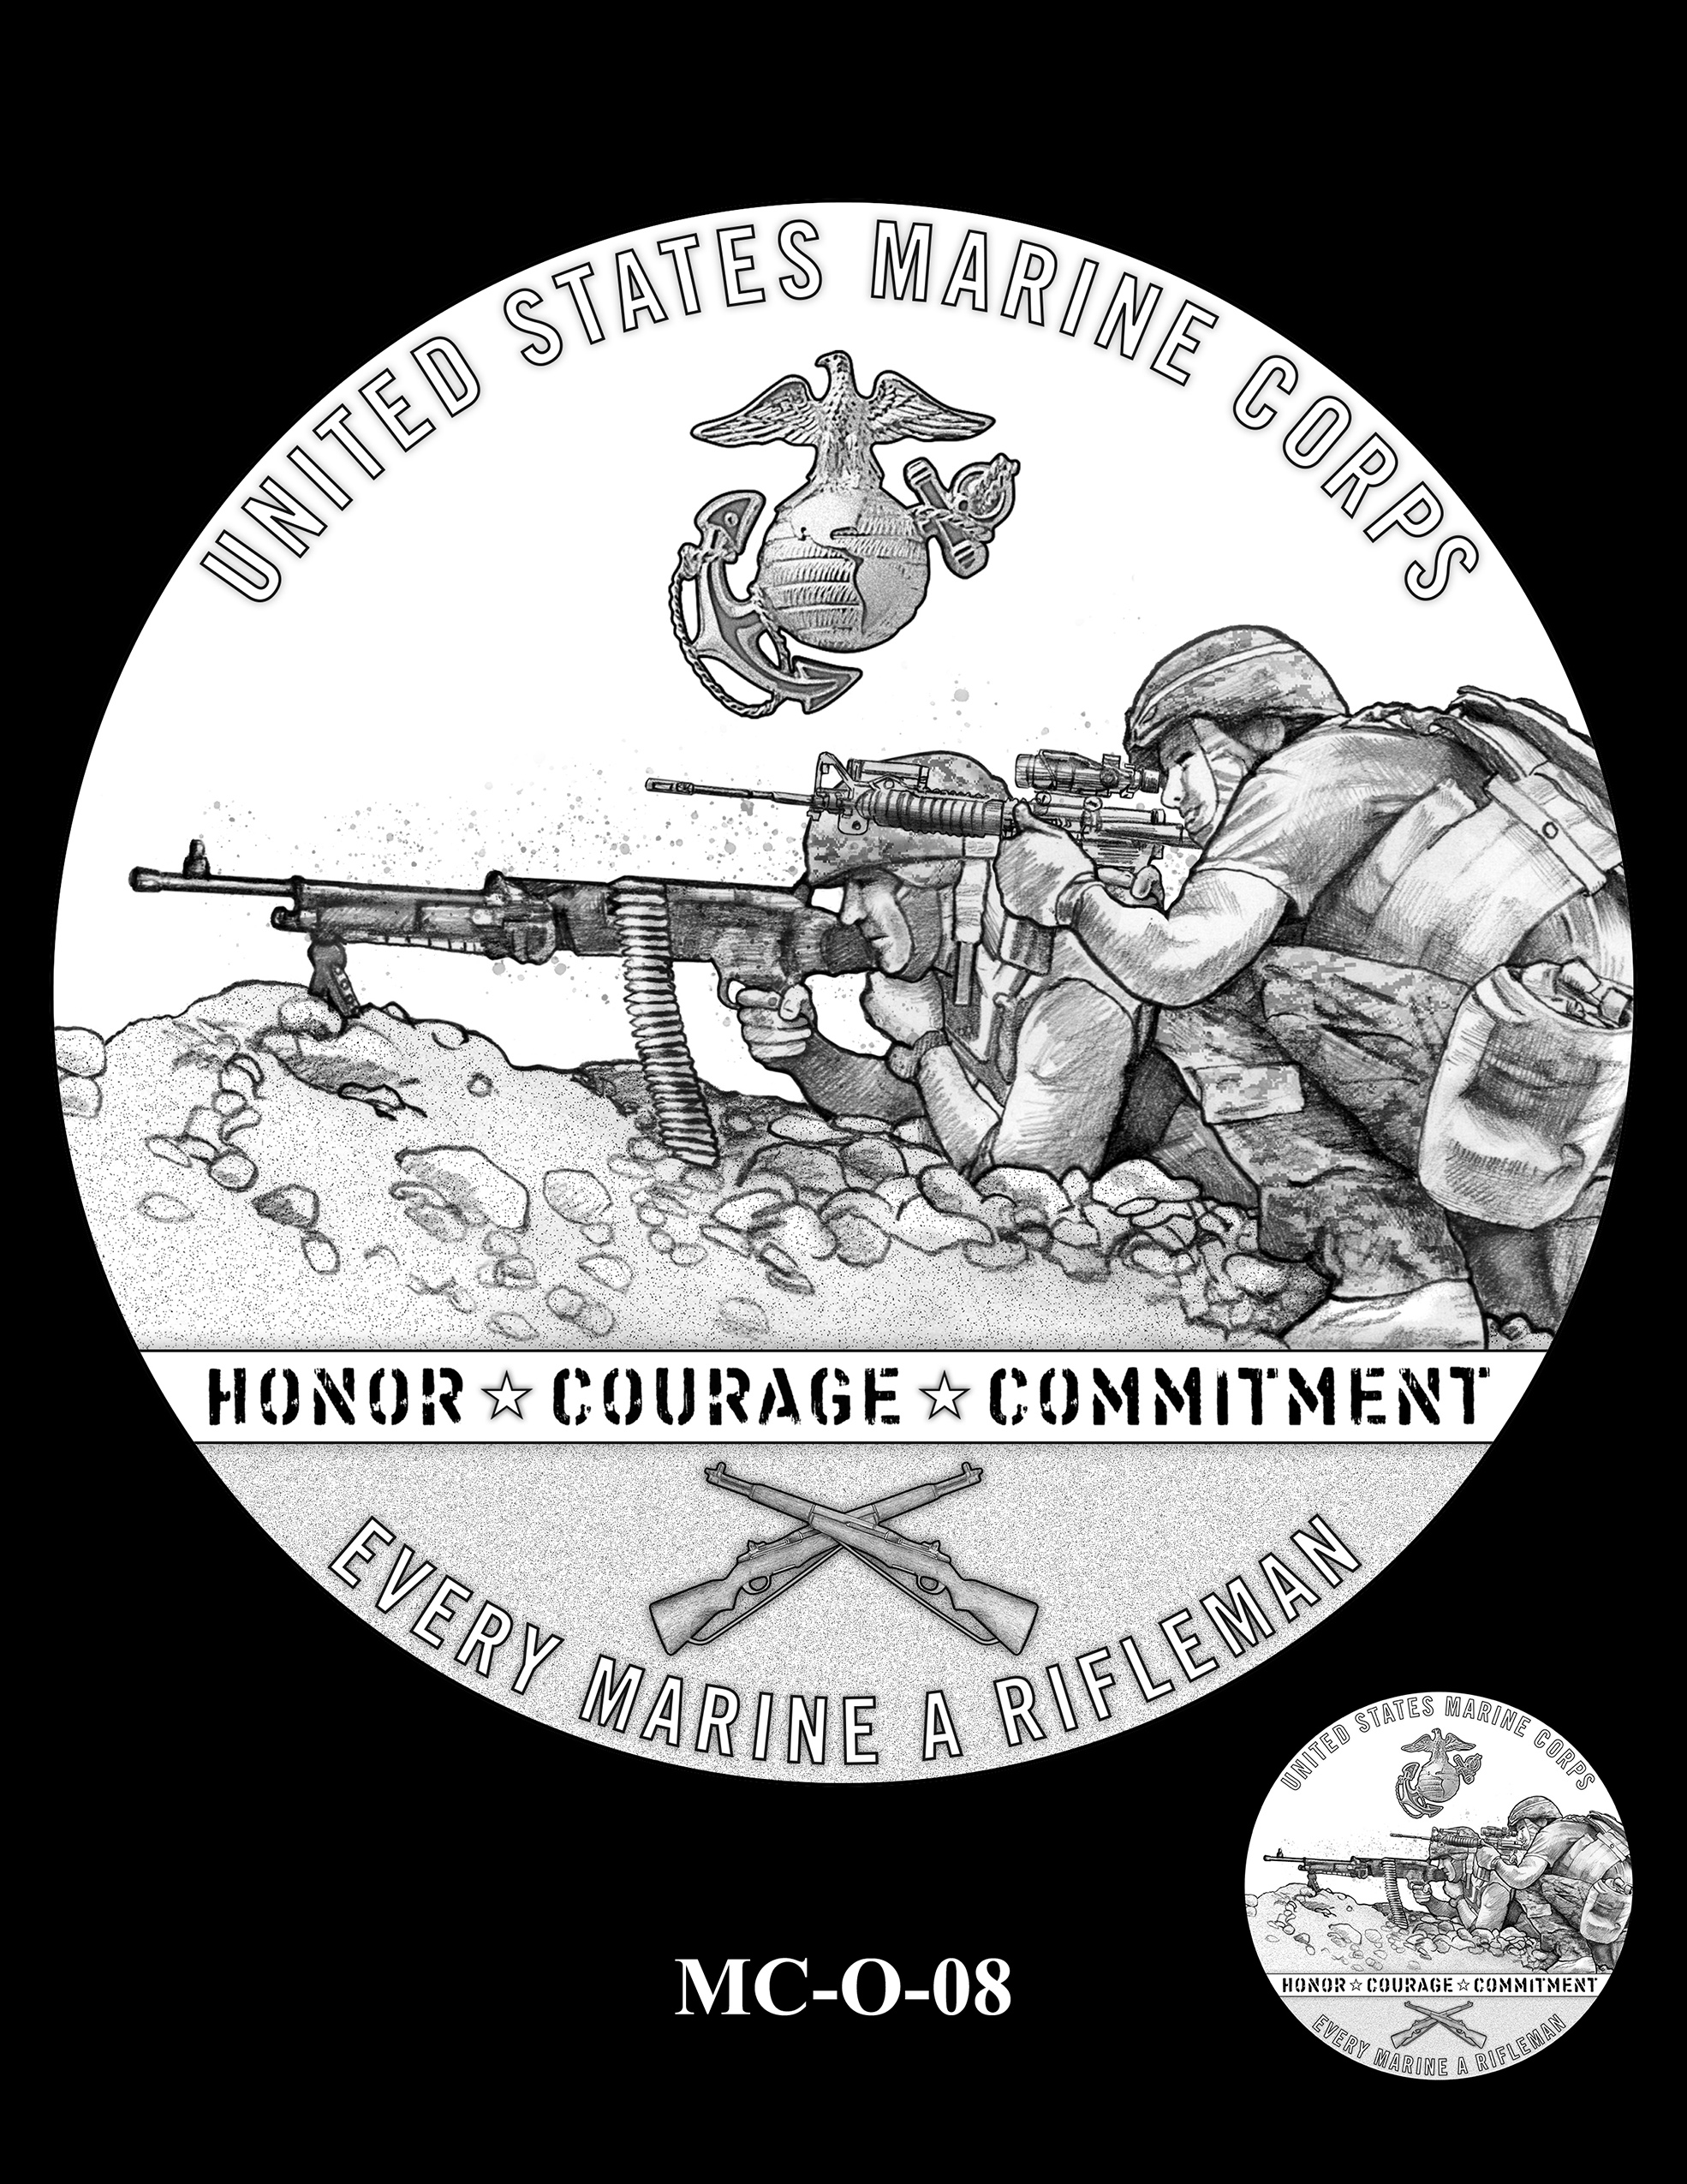 MC-O-08 -- United States Marine Corps Silver Medal